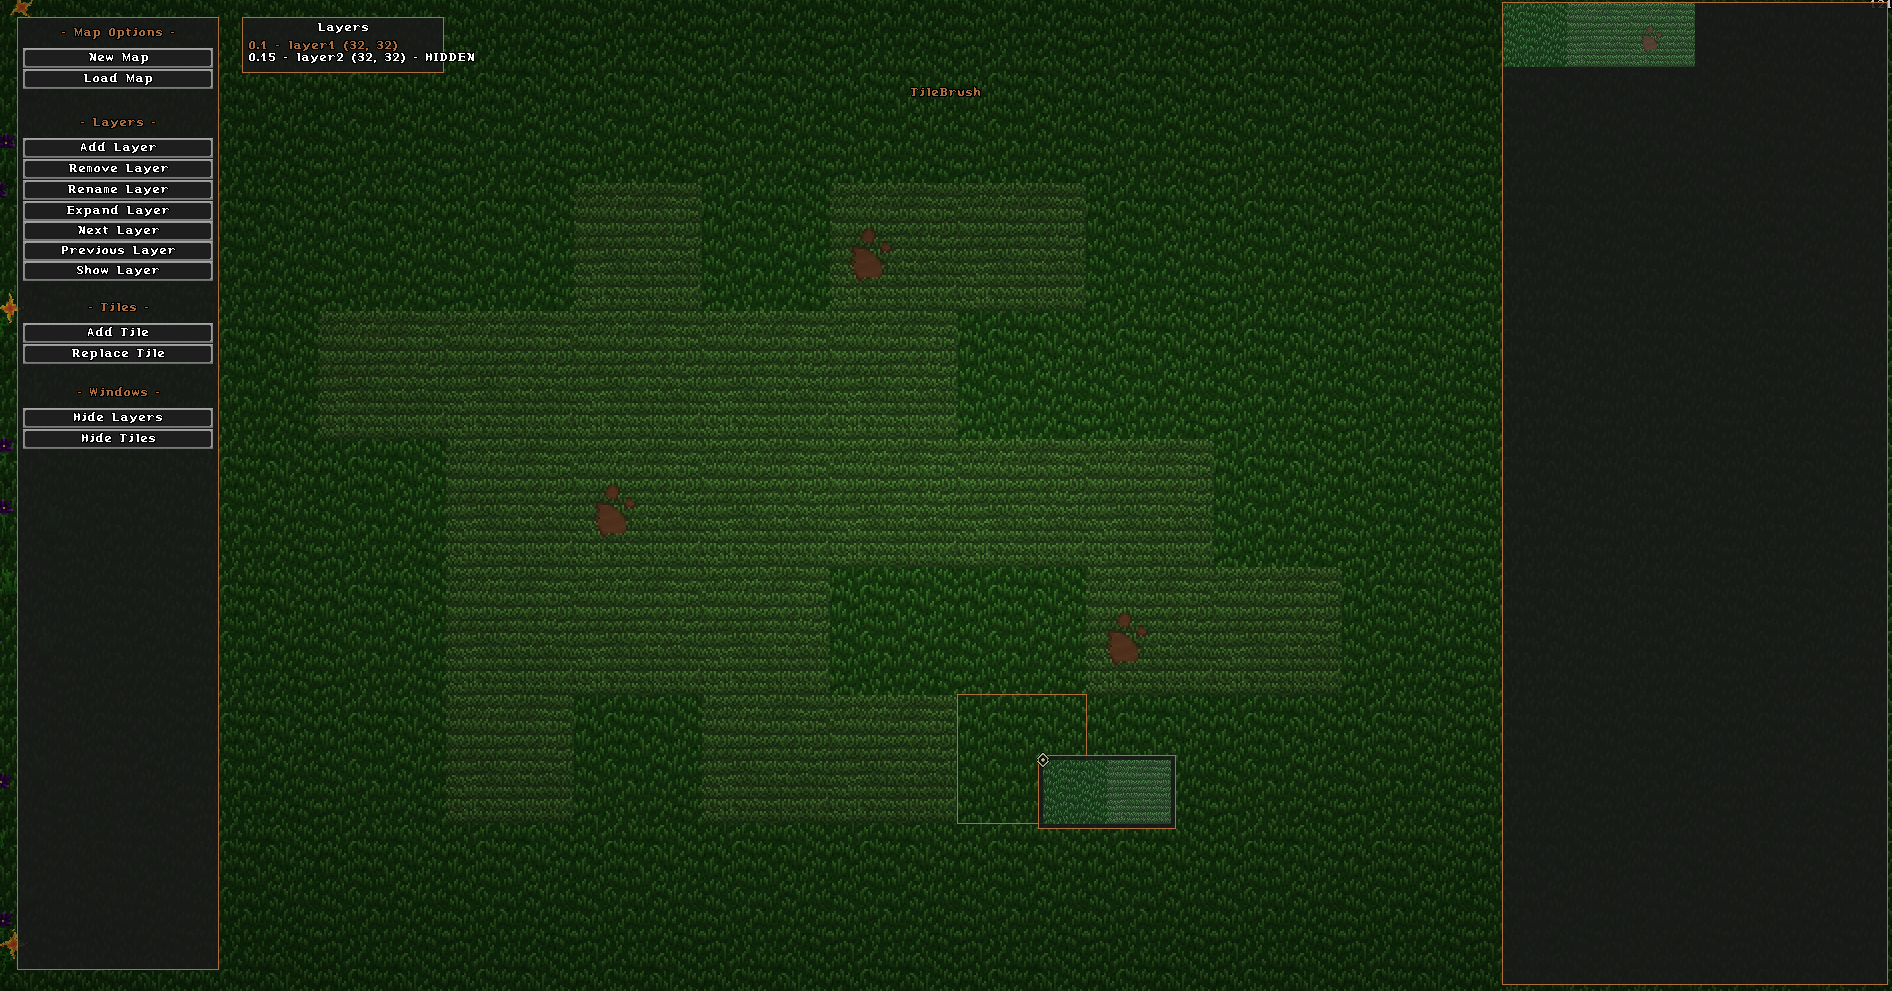 The Tile Editor, very useful for speeding up map editing.